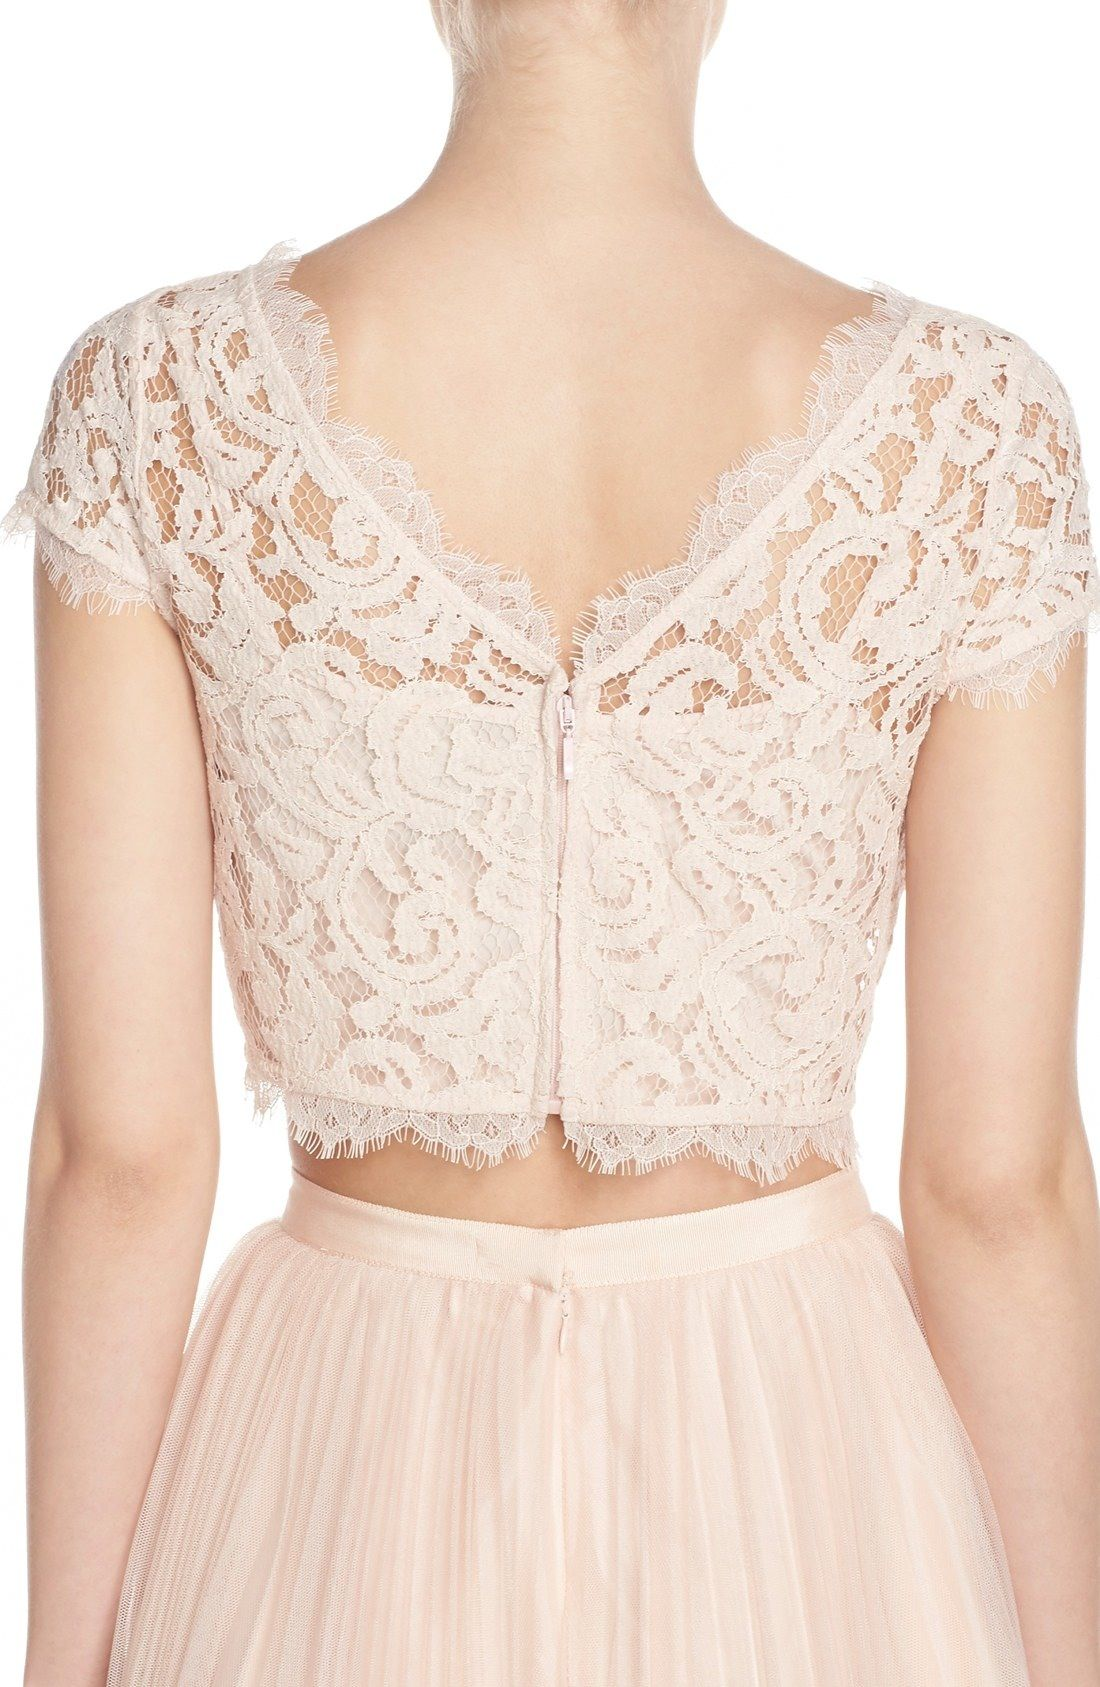 aaaea60ae7 Lace Crop Top & tulle skirt in blush by Adrianna Papell   Classy ...